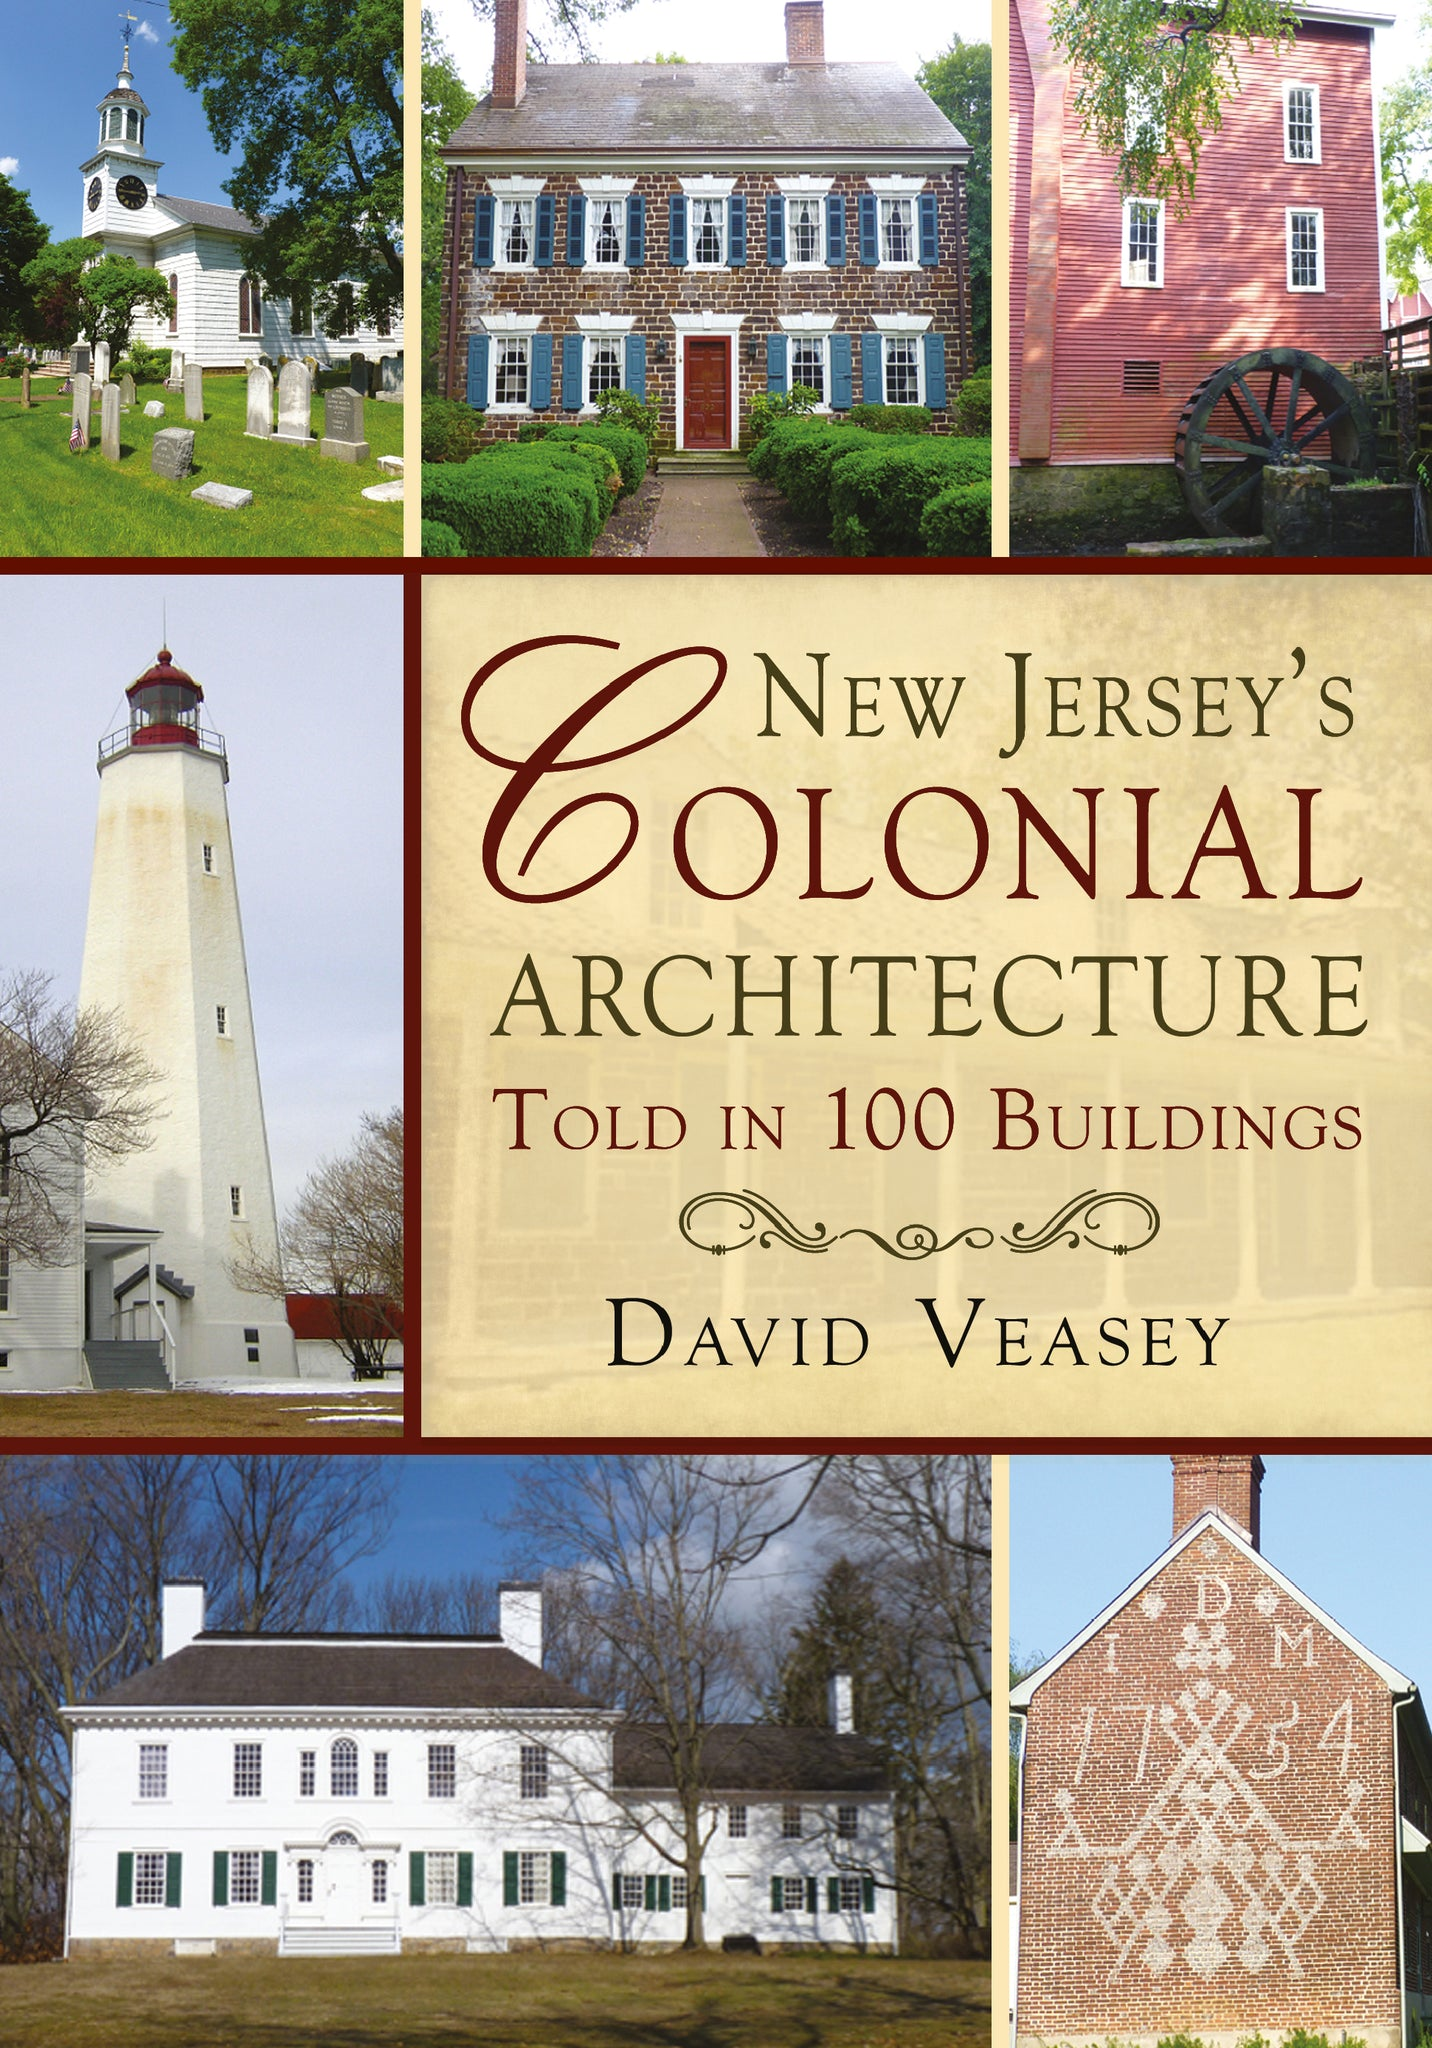 New Jersey's Colonial Architecture: Told in 100 Buildings